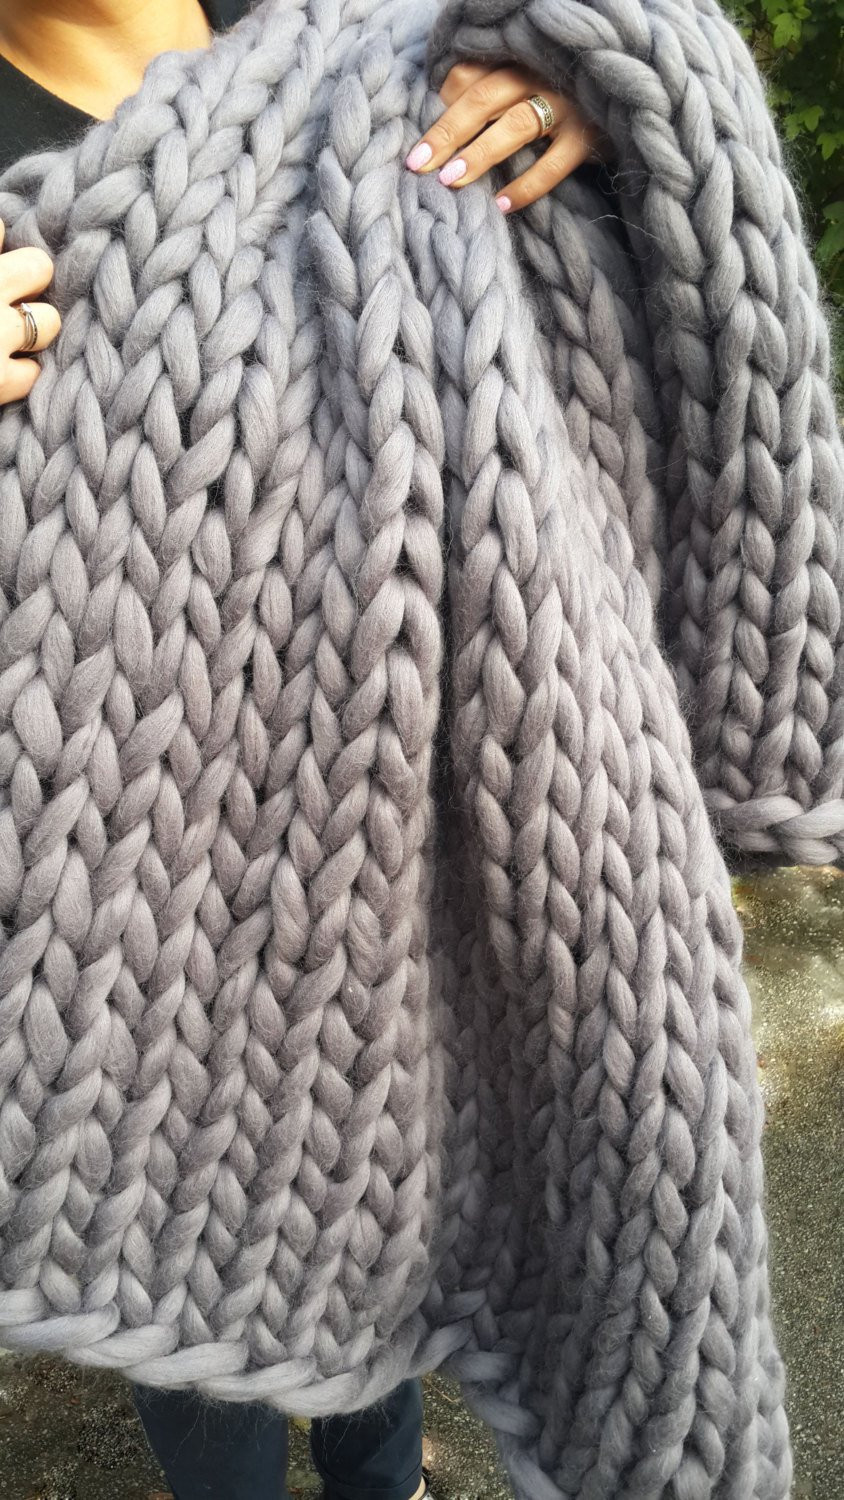 Thick Yarn Blanket Luxury Chunky Knit Blanket Wool Knit Blanket Knitted Blanket Of Perfect 41 Images Thick Yarn Blanket